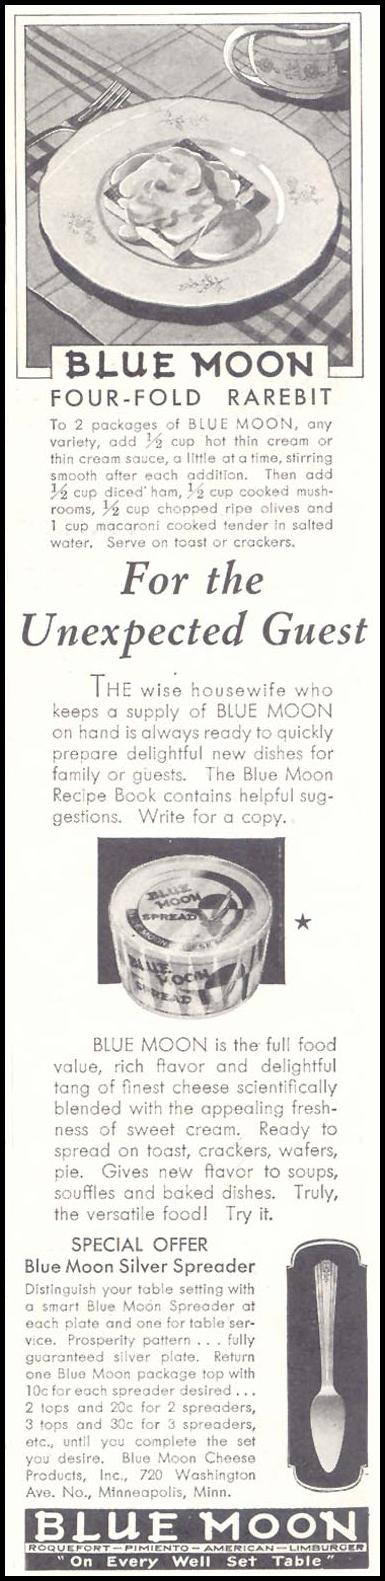 BLUE MOON CHEESE GOOD HOUSEKEEPING 11/01/1933 p. 149